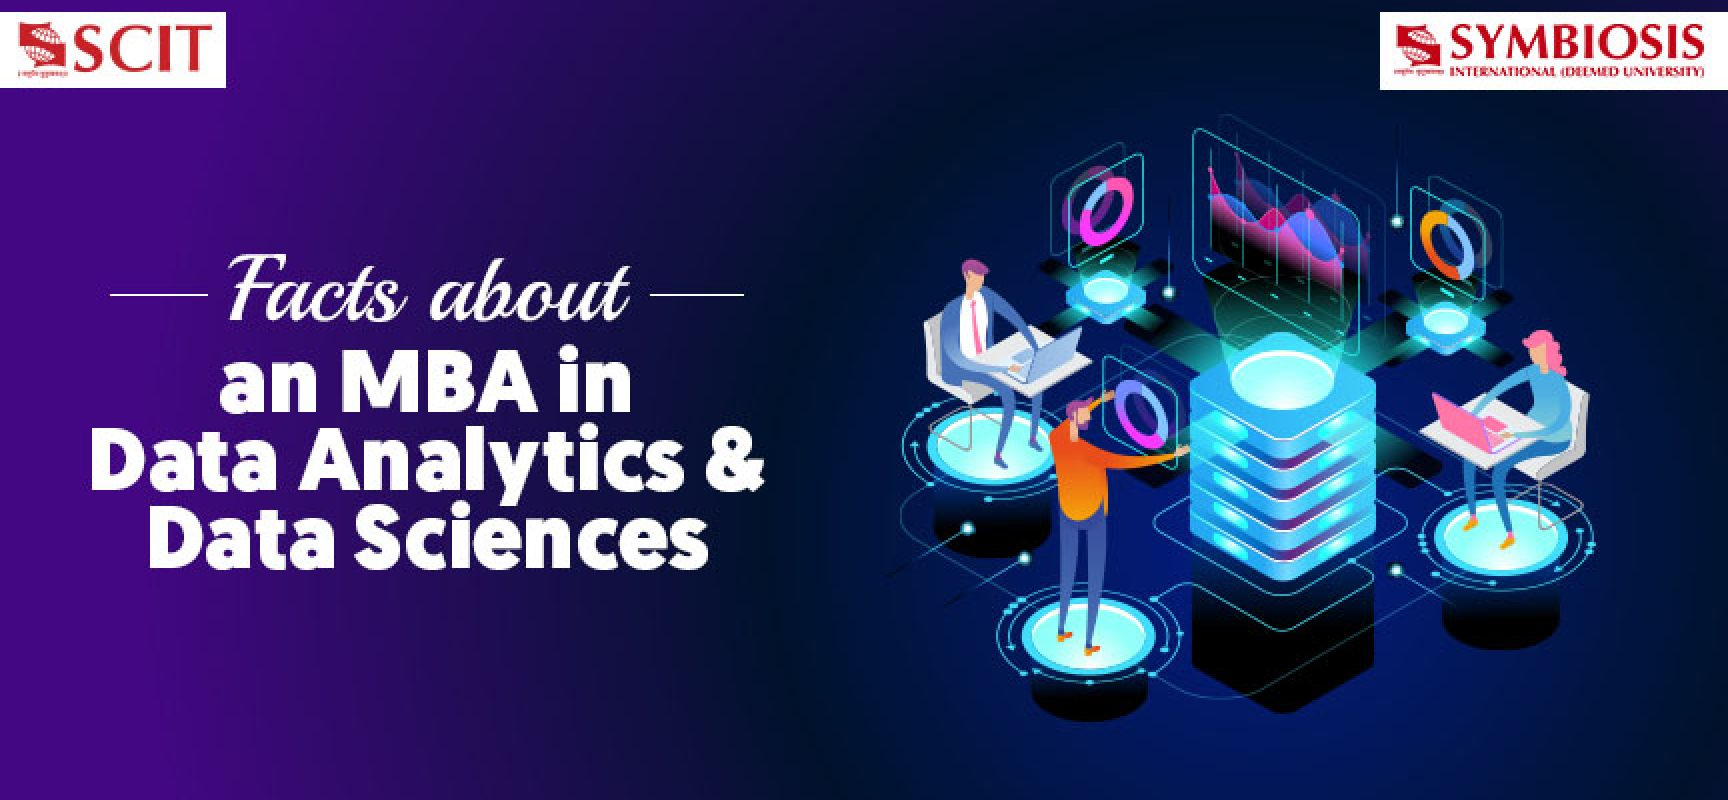 Facts about Data Science and Data Analytics